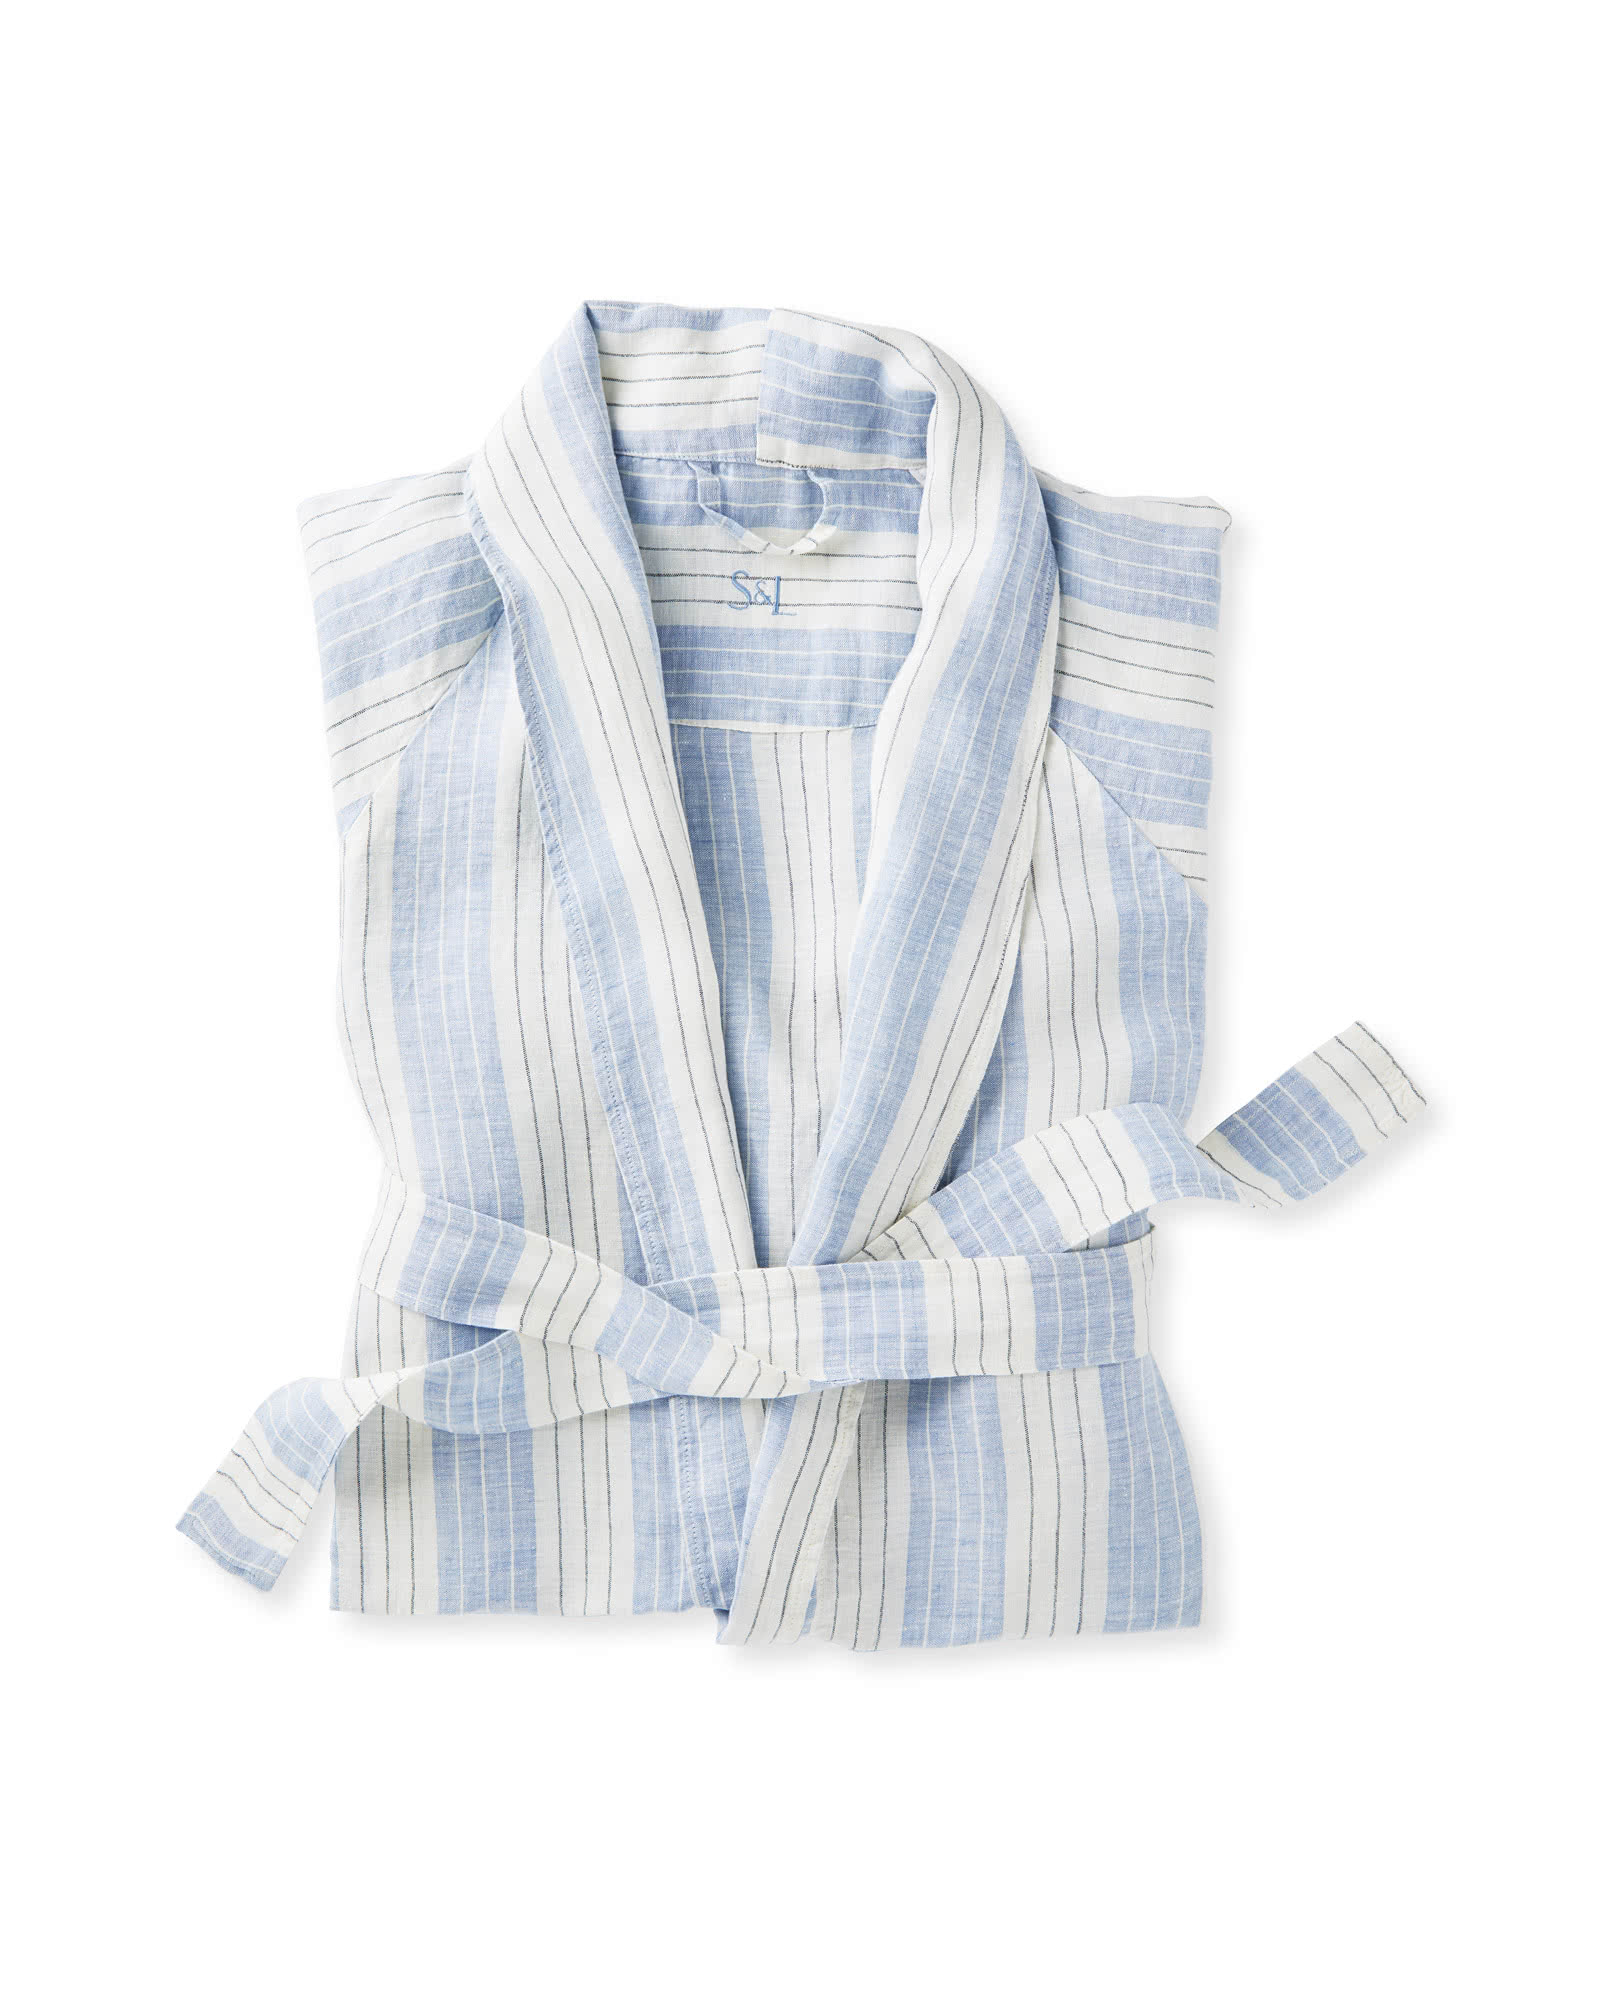 Serena & Lily Porto Linen Robe in chambray and white stripes